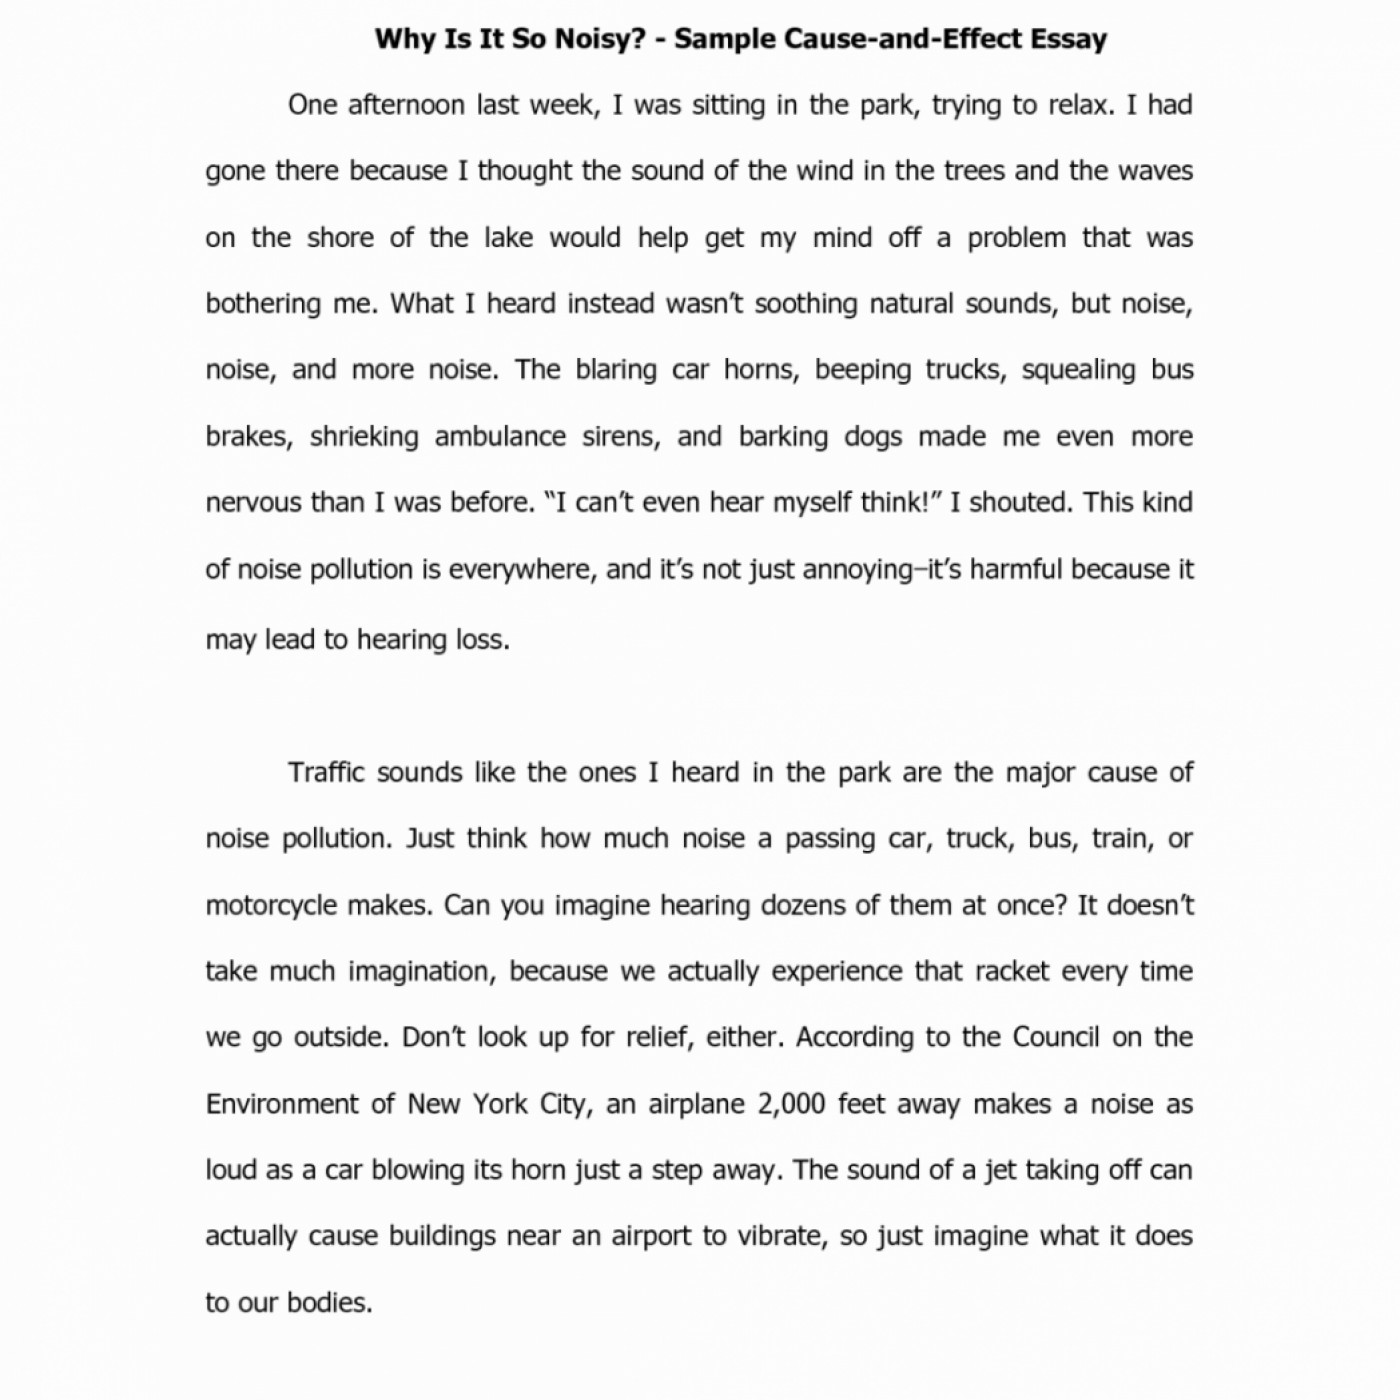 027 Cause And Effect Essays Format Best Of For Or Good Cover Bystander Domino Analysis Ielts Free 6th Grade College Pdf Middle School 1048x1048 Amazing Essay Examples Divorce Writing 1400